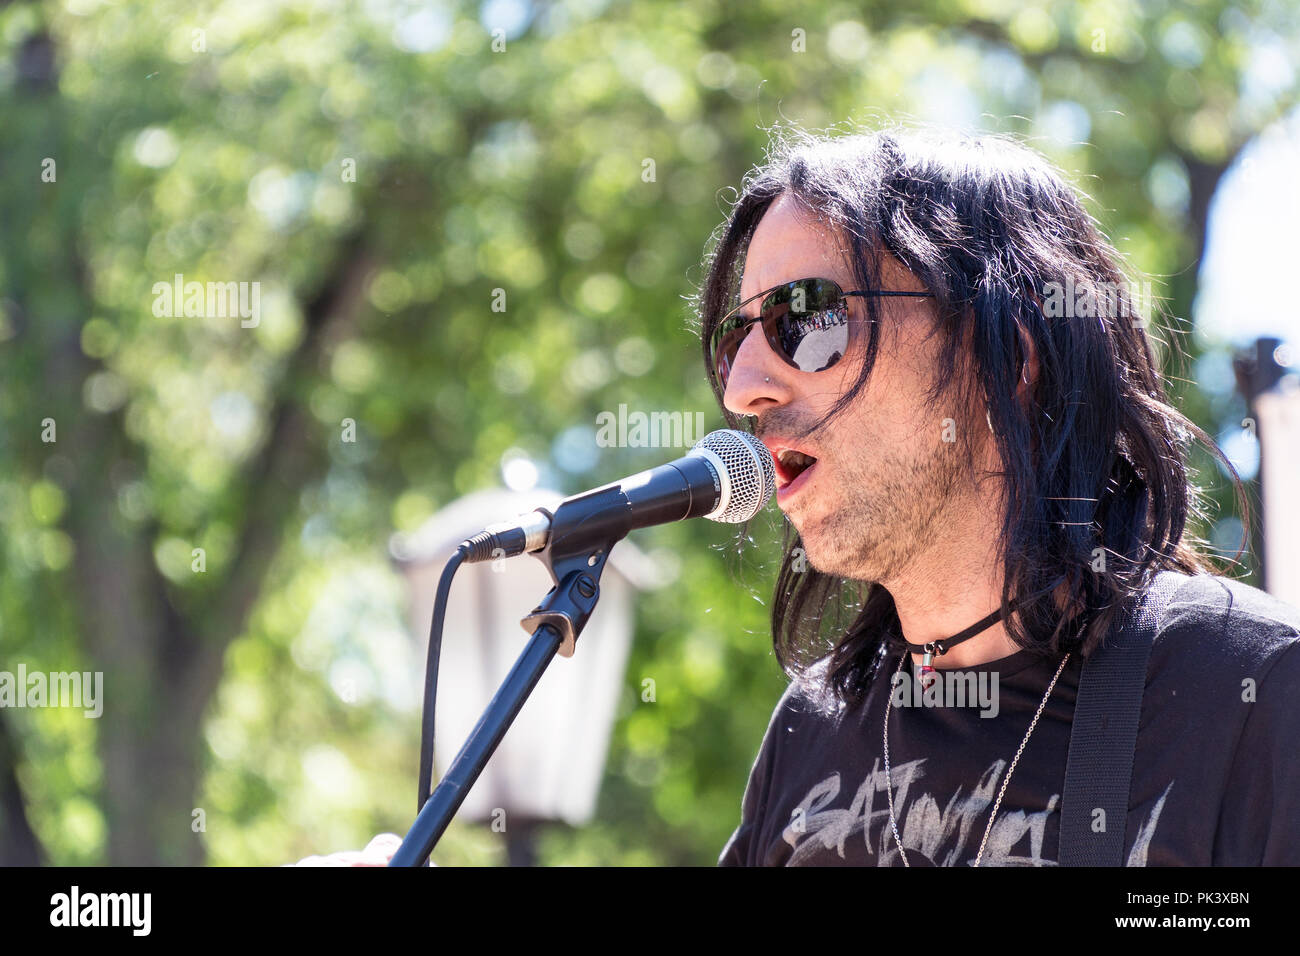 Unknown singer sings into the microphone in the Park - Stock Image